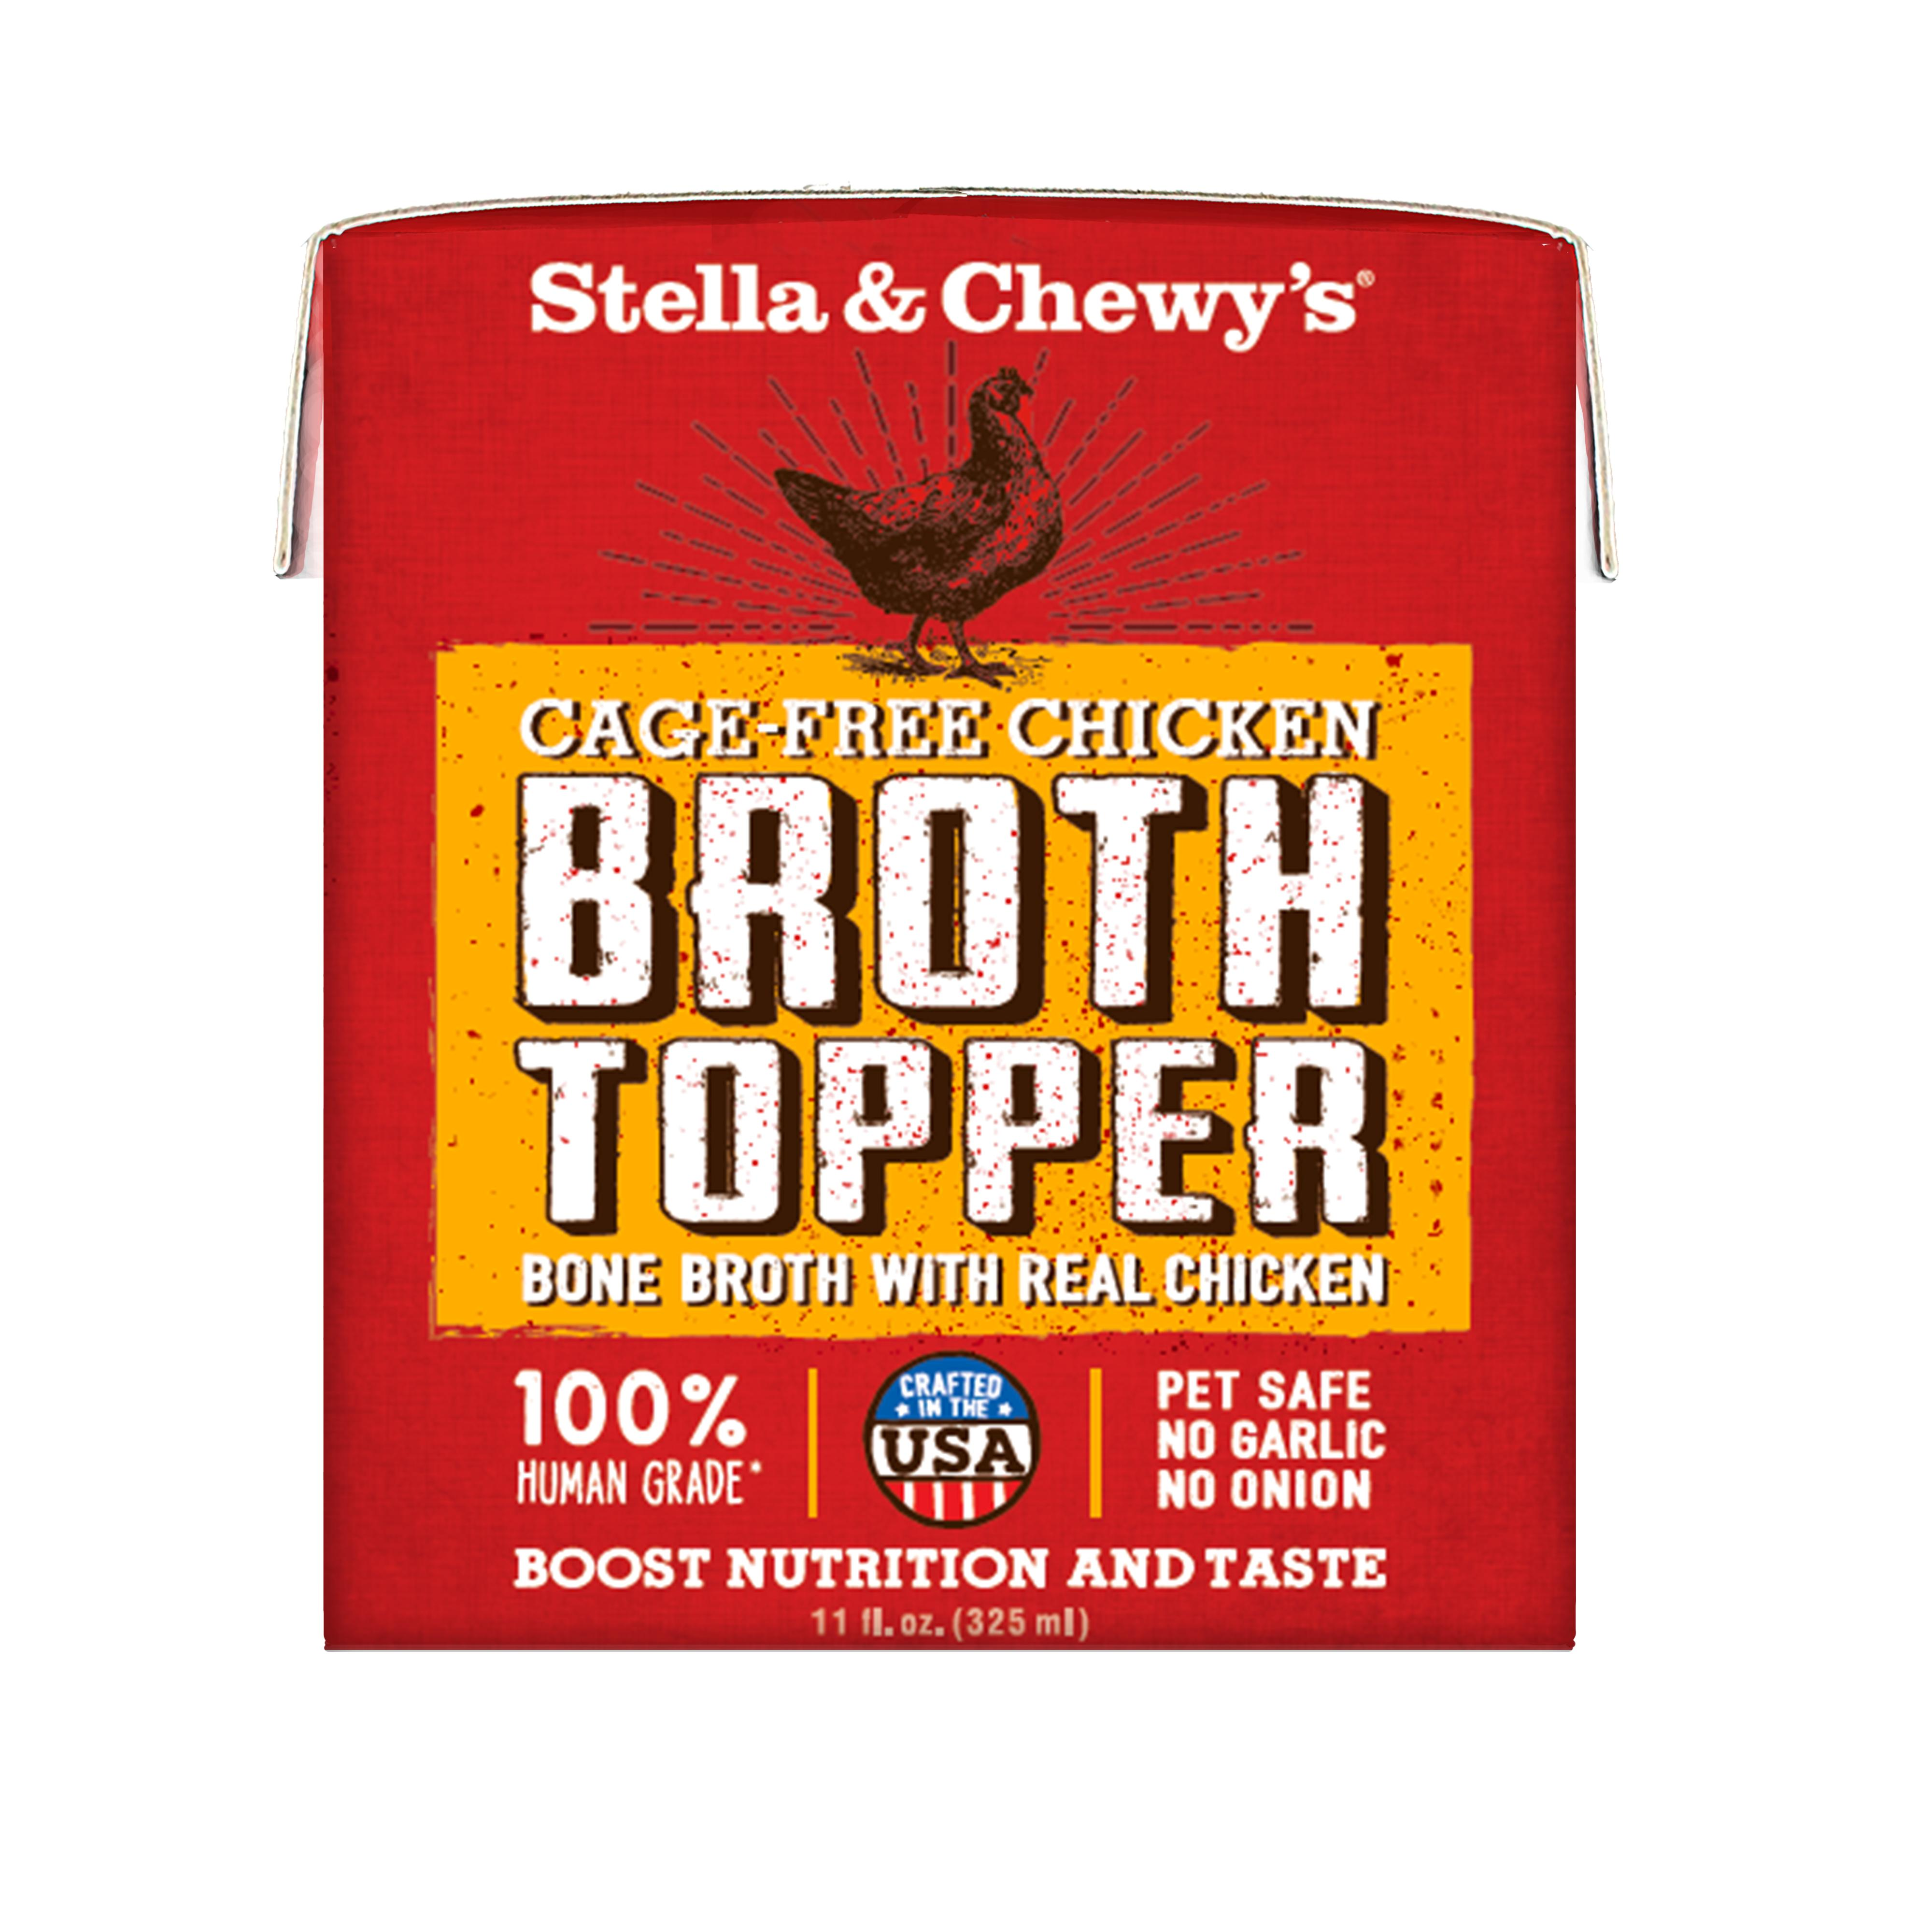 Stella & Chewy's Broth Topper Cage-Free Chicken for Dogs, 11-oz (Size: 11-oz) Image